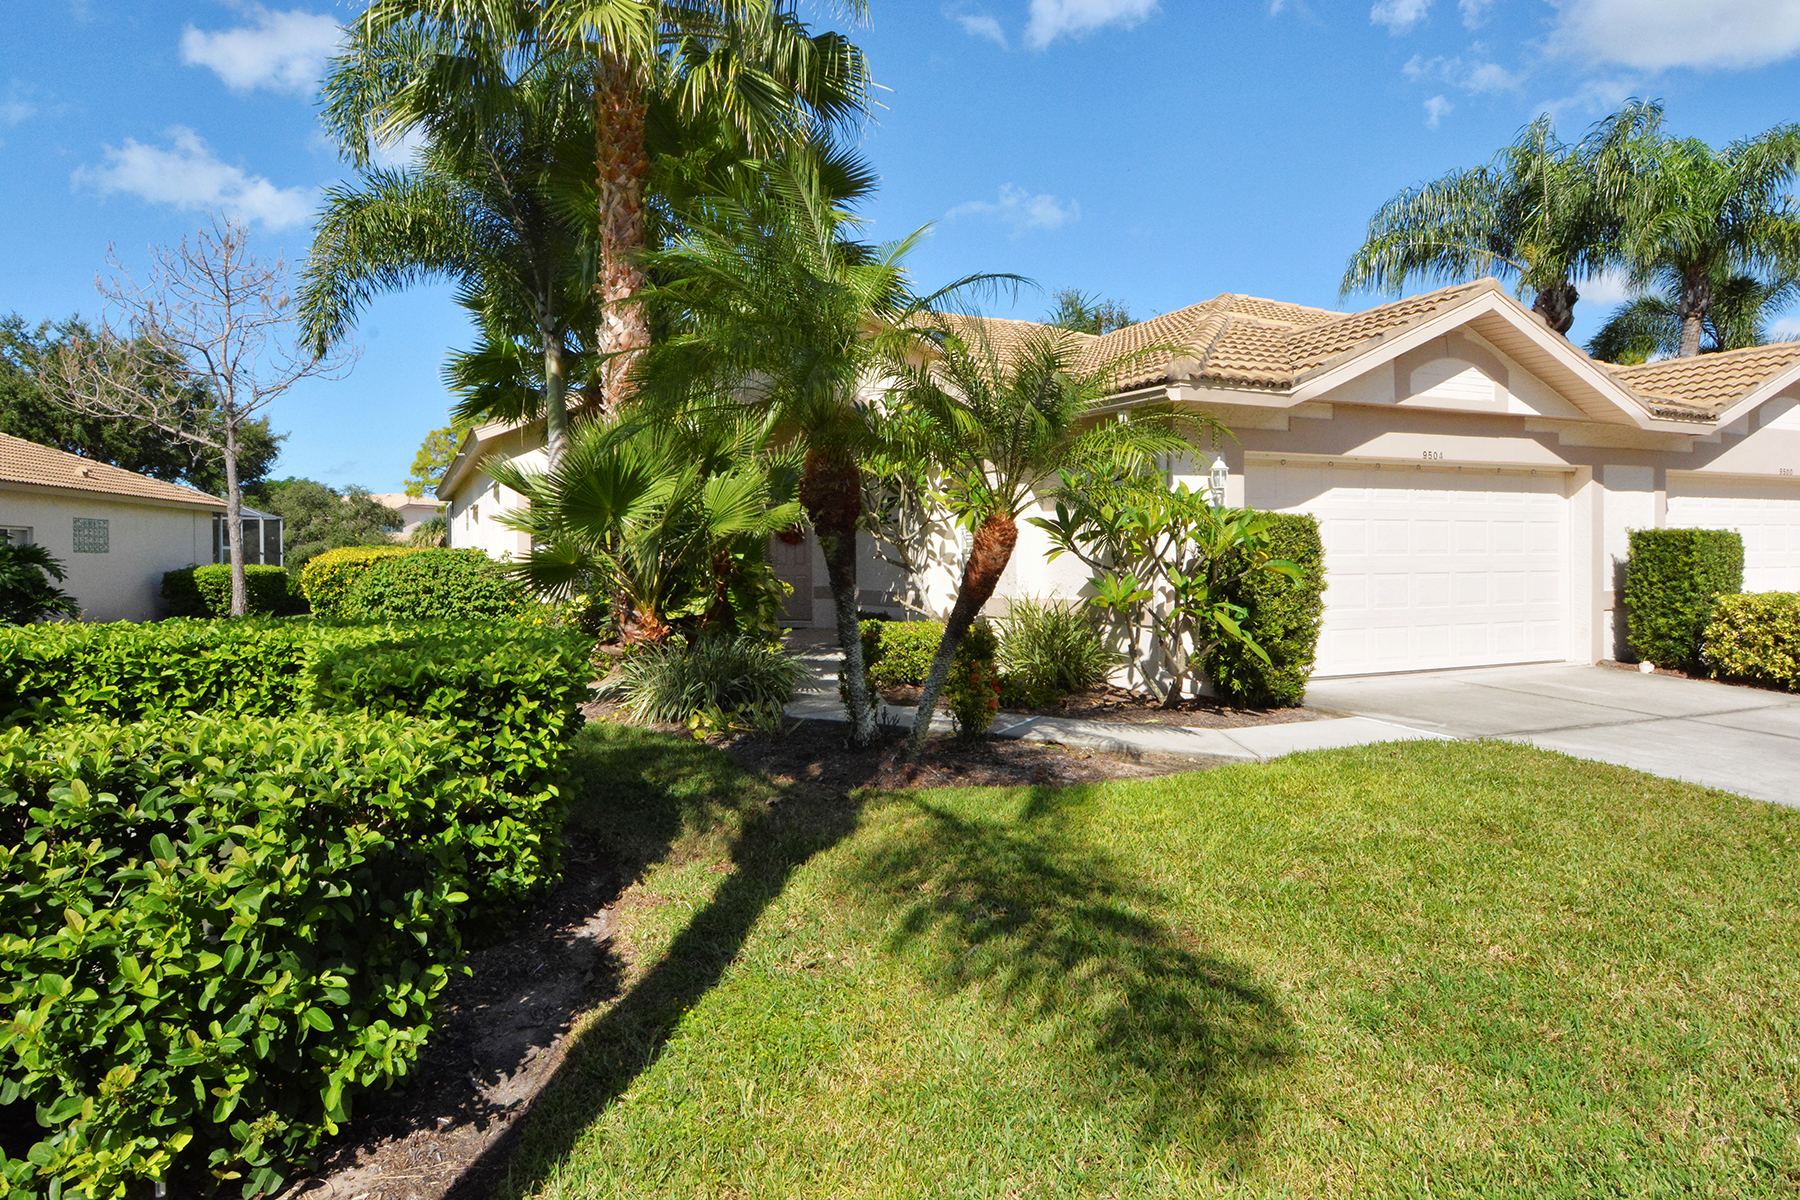 Townhouse for Sale at STONEYBROOK GOLF AND COUNTRY CLUB 9504 Forest Hills Cir Sarasota, Florida, 34238 United States